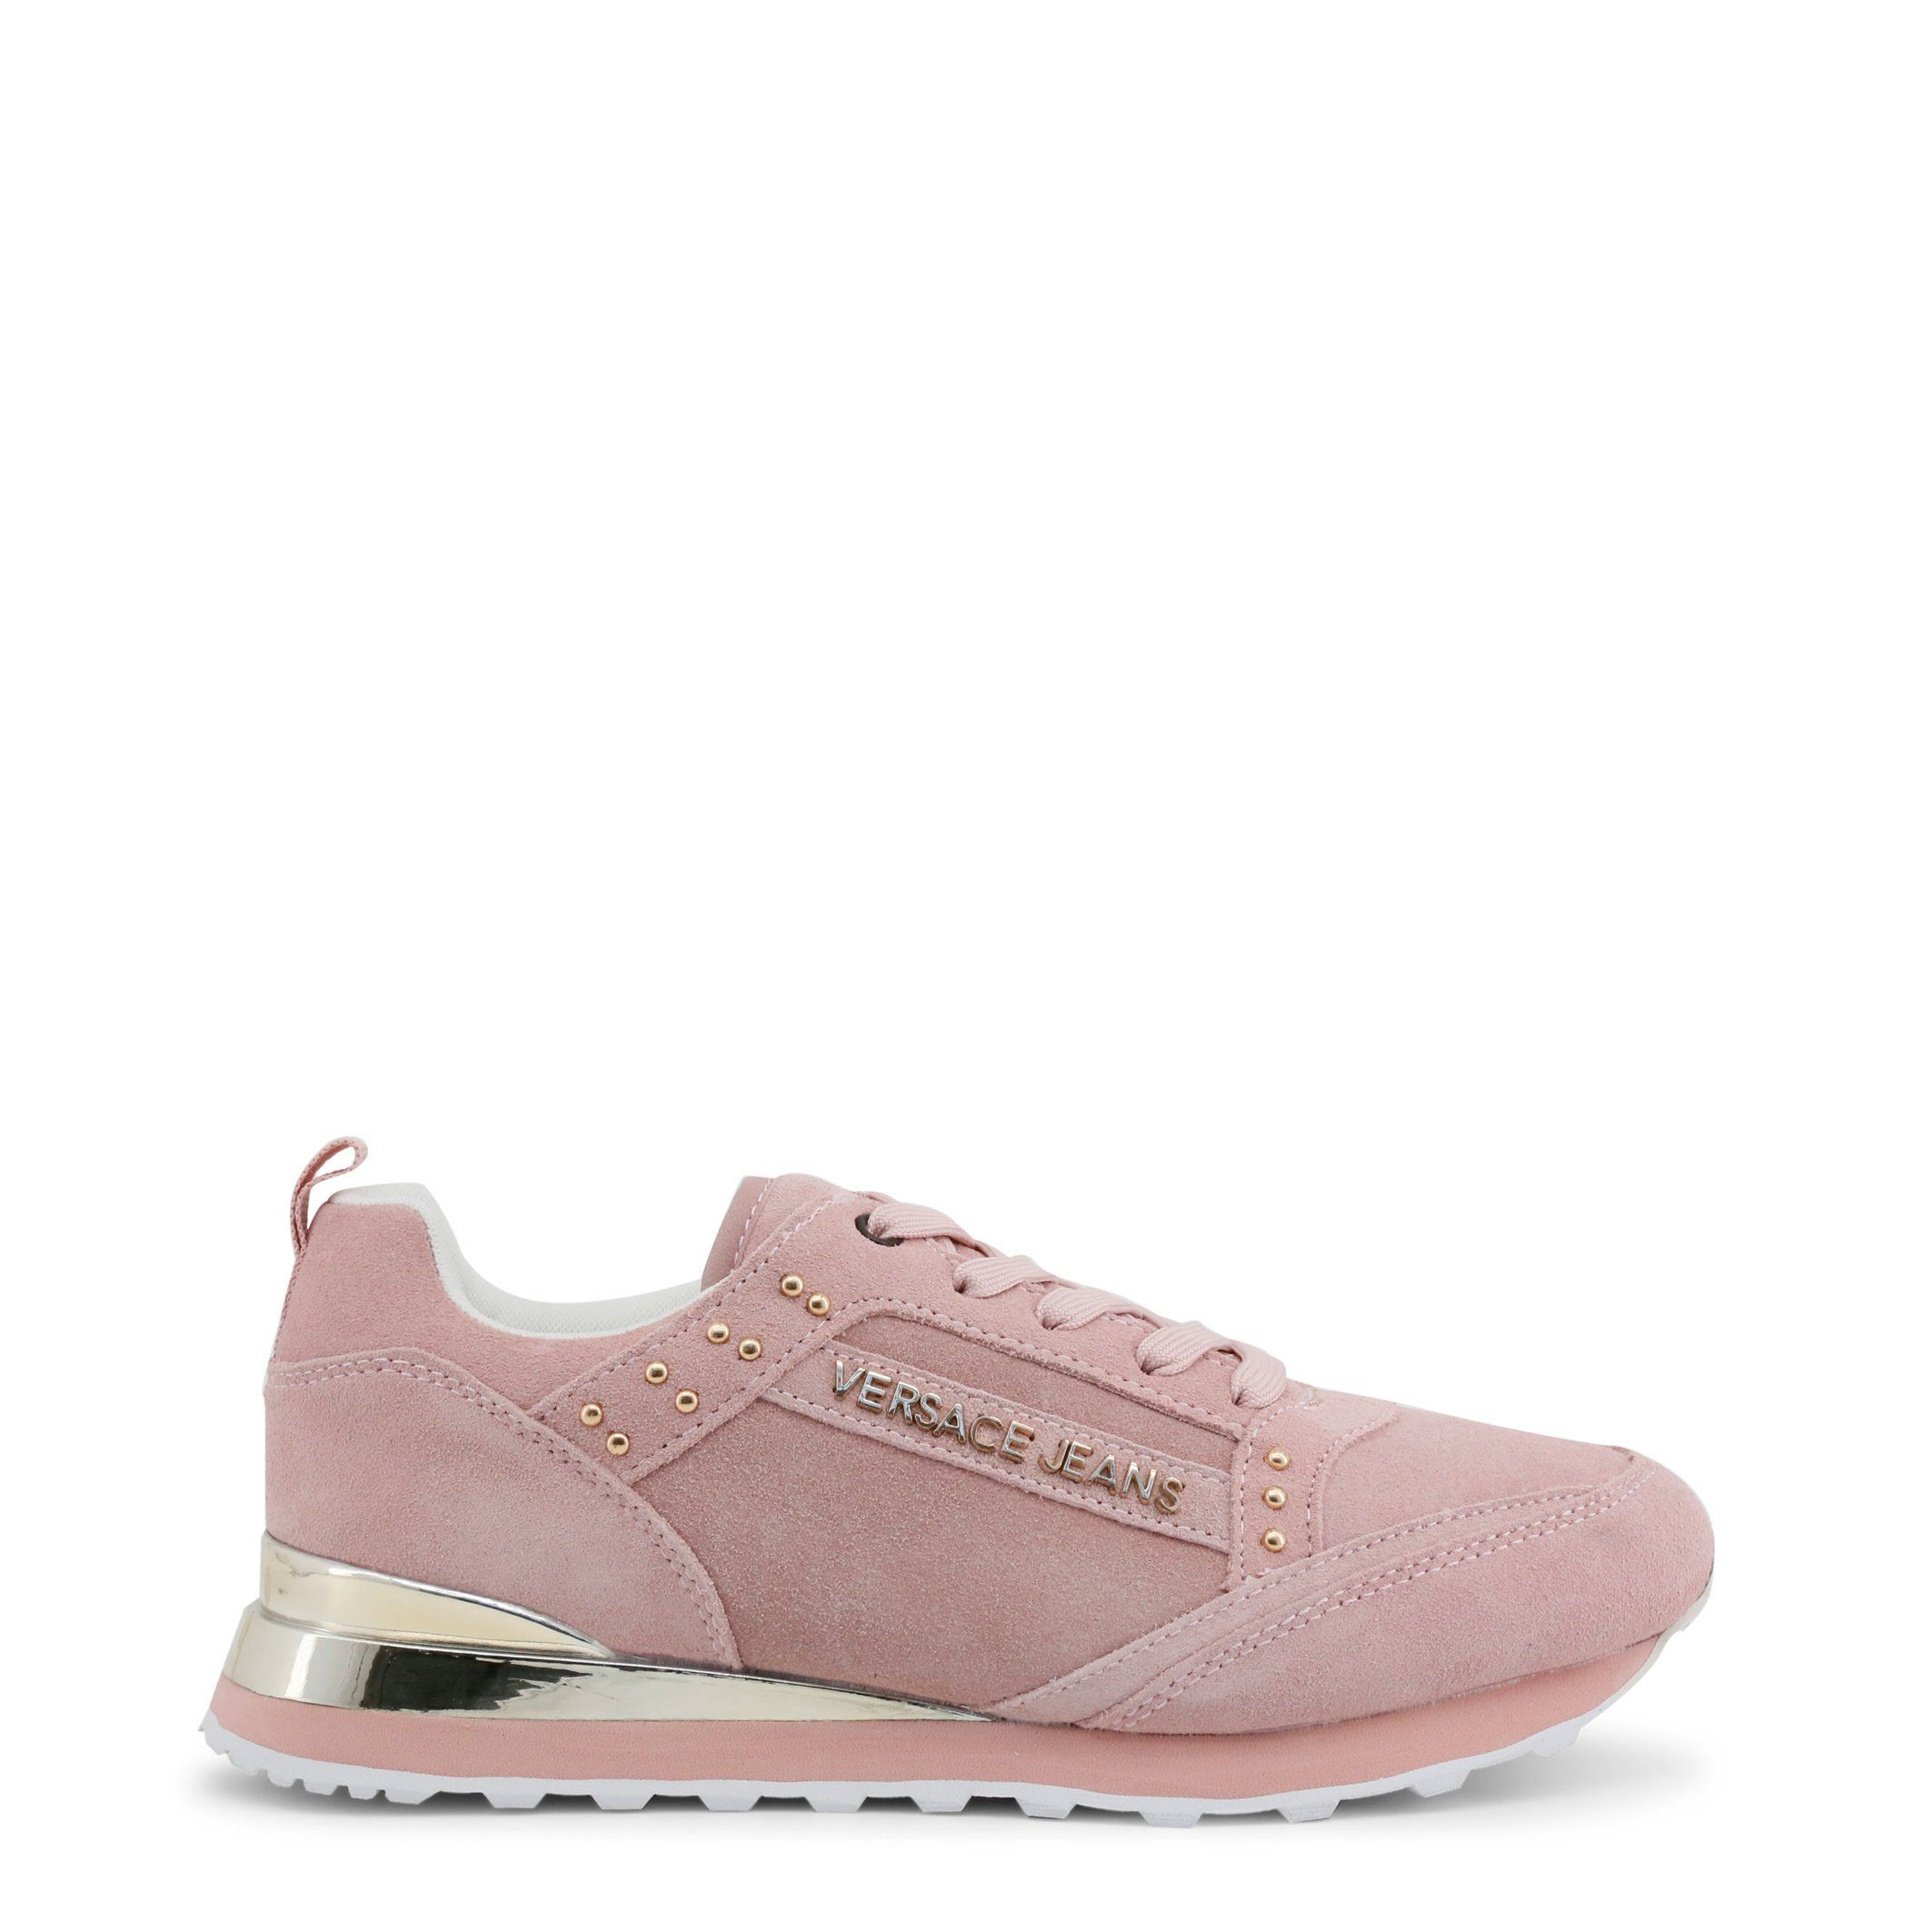 Versace Jeans VRBSD2 Women Sneakers Pink | Fashion, Pink